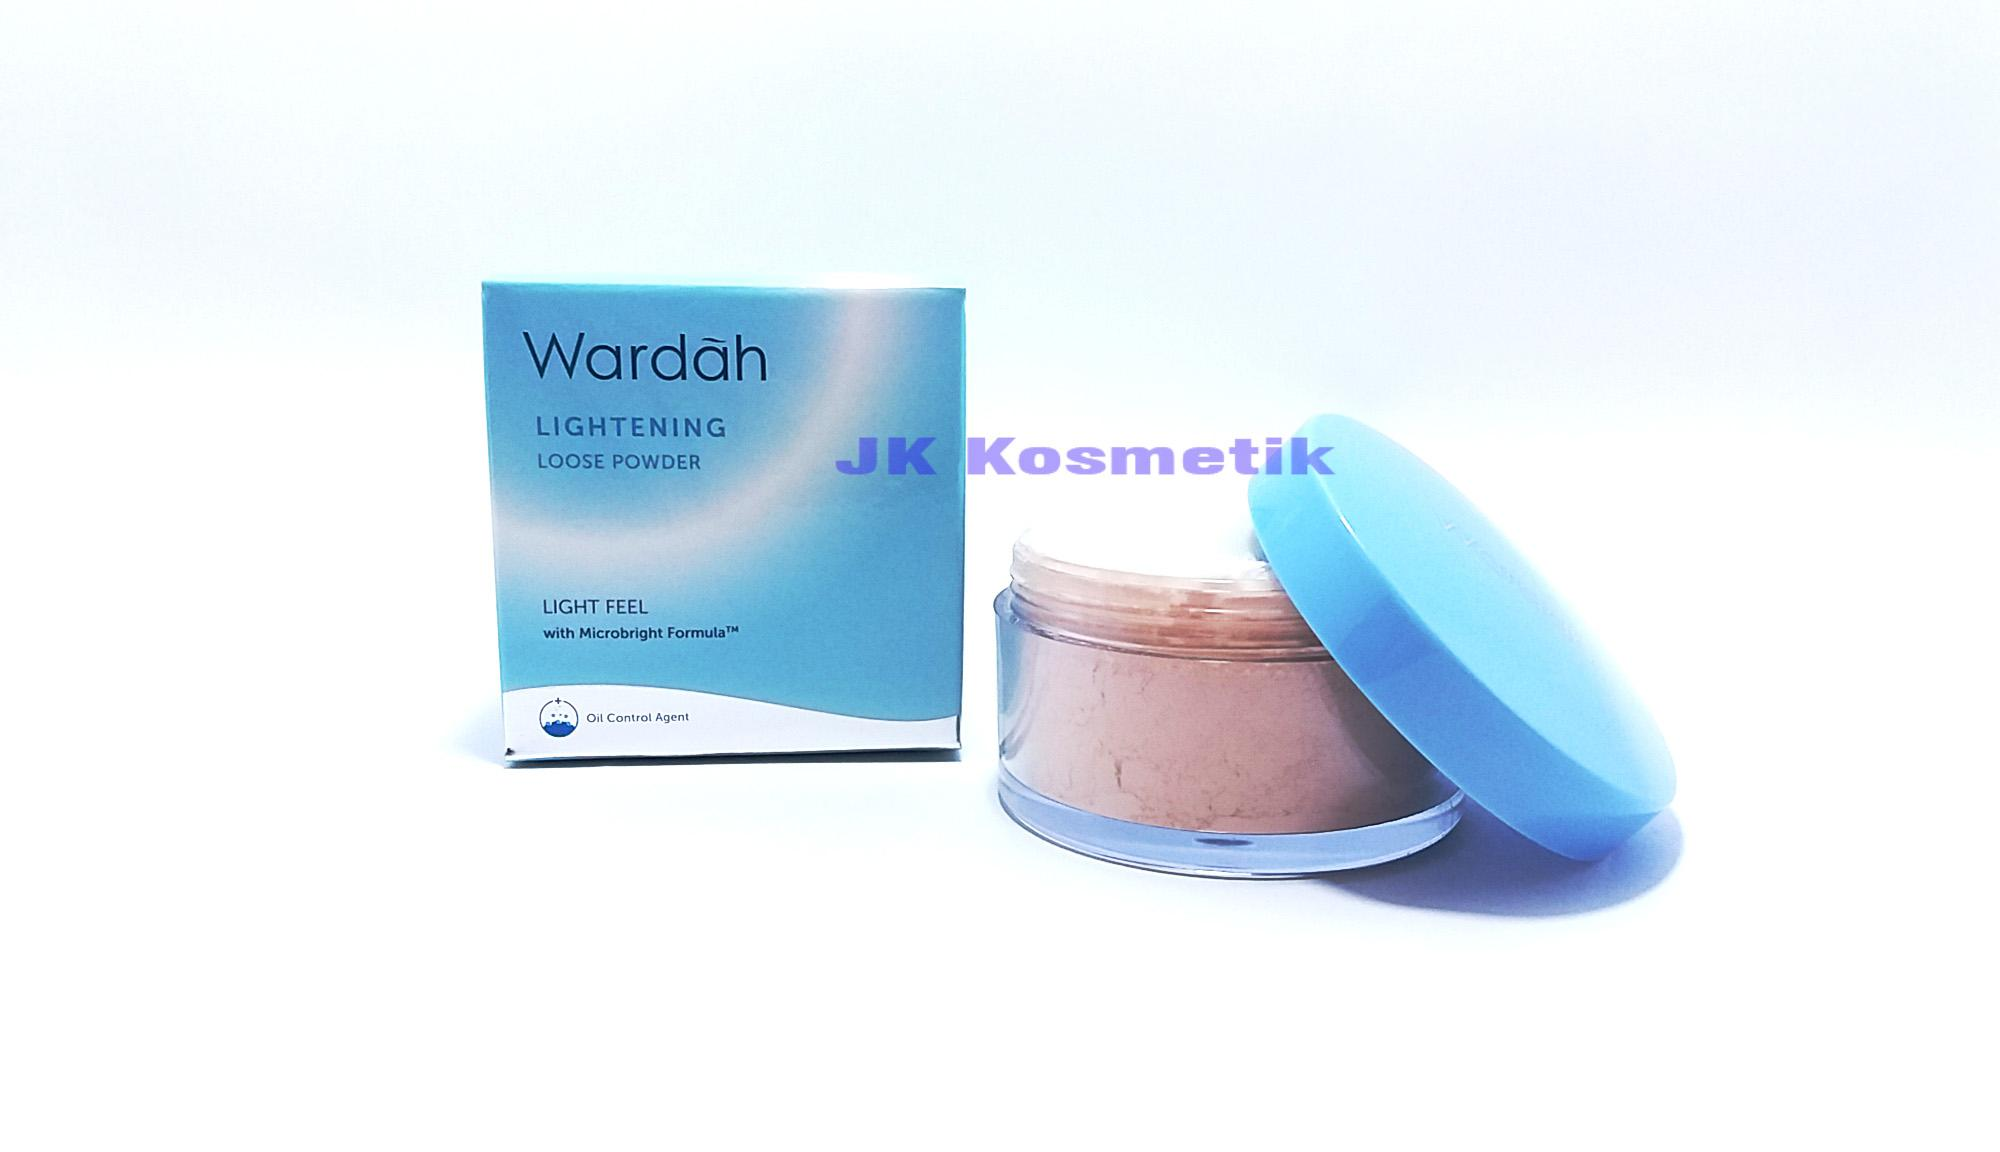 Wardah Lightening Bedak Tabur Loose Powder 01 Light Beige Light Feel